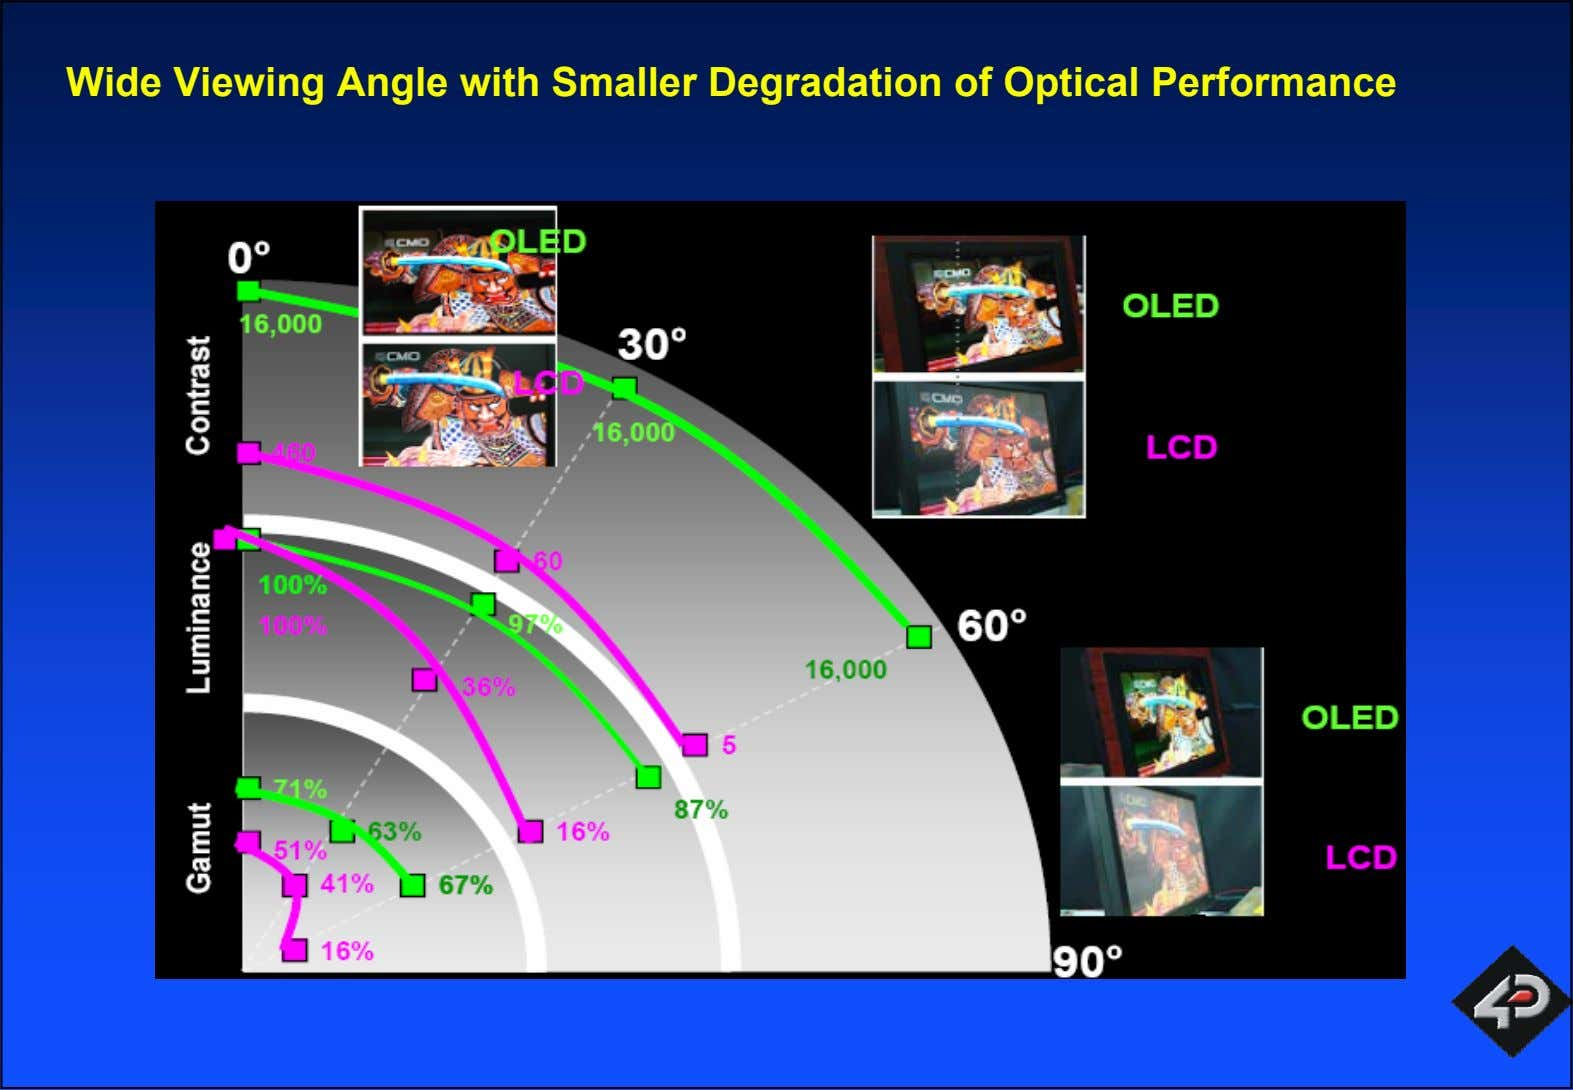 Wide Viewing Angle with Smaller Degradation of Optical Performance